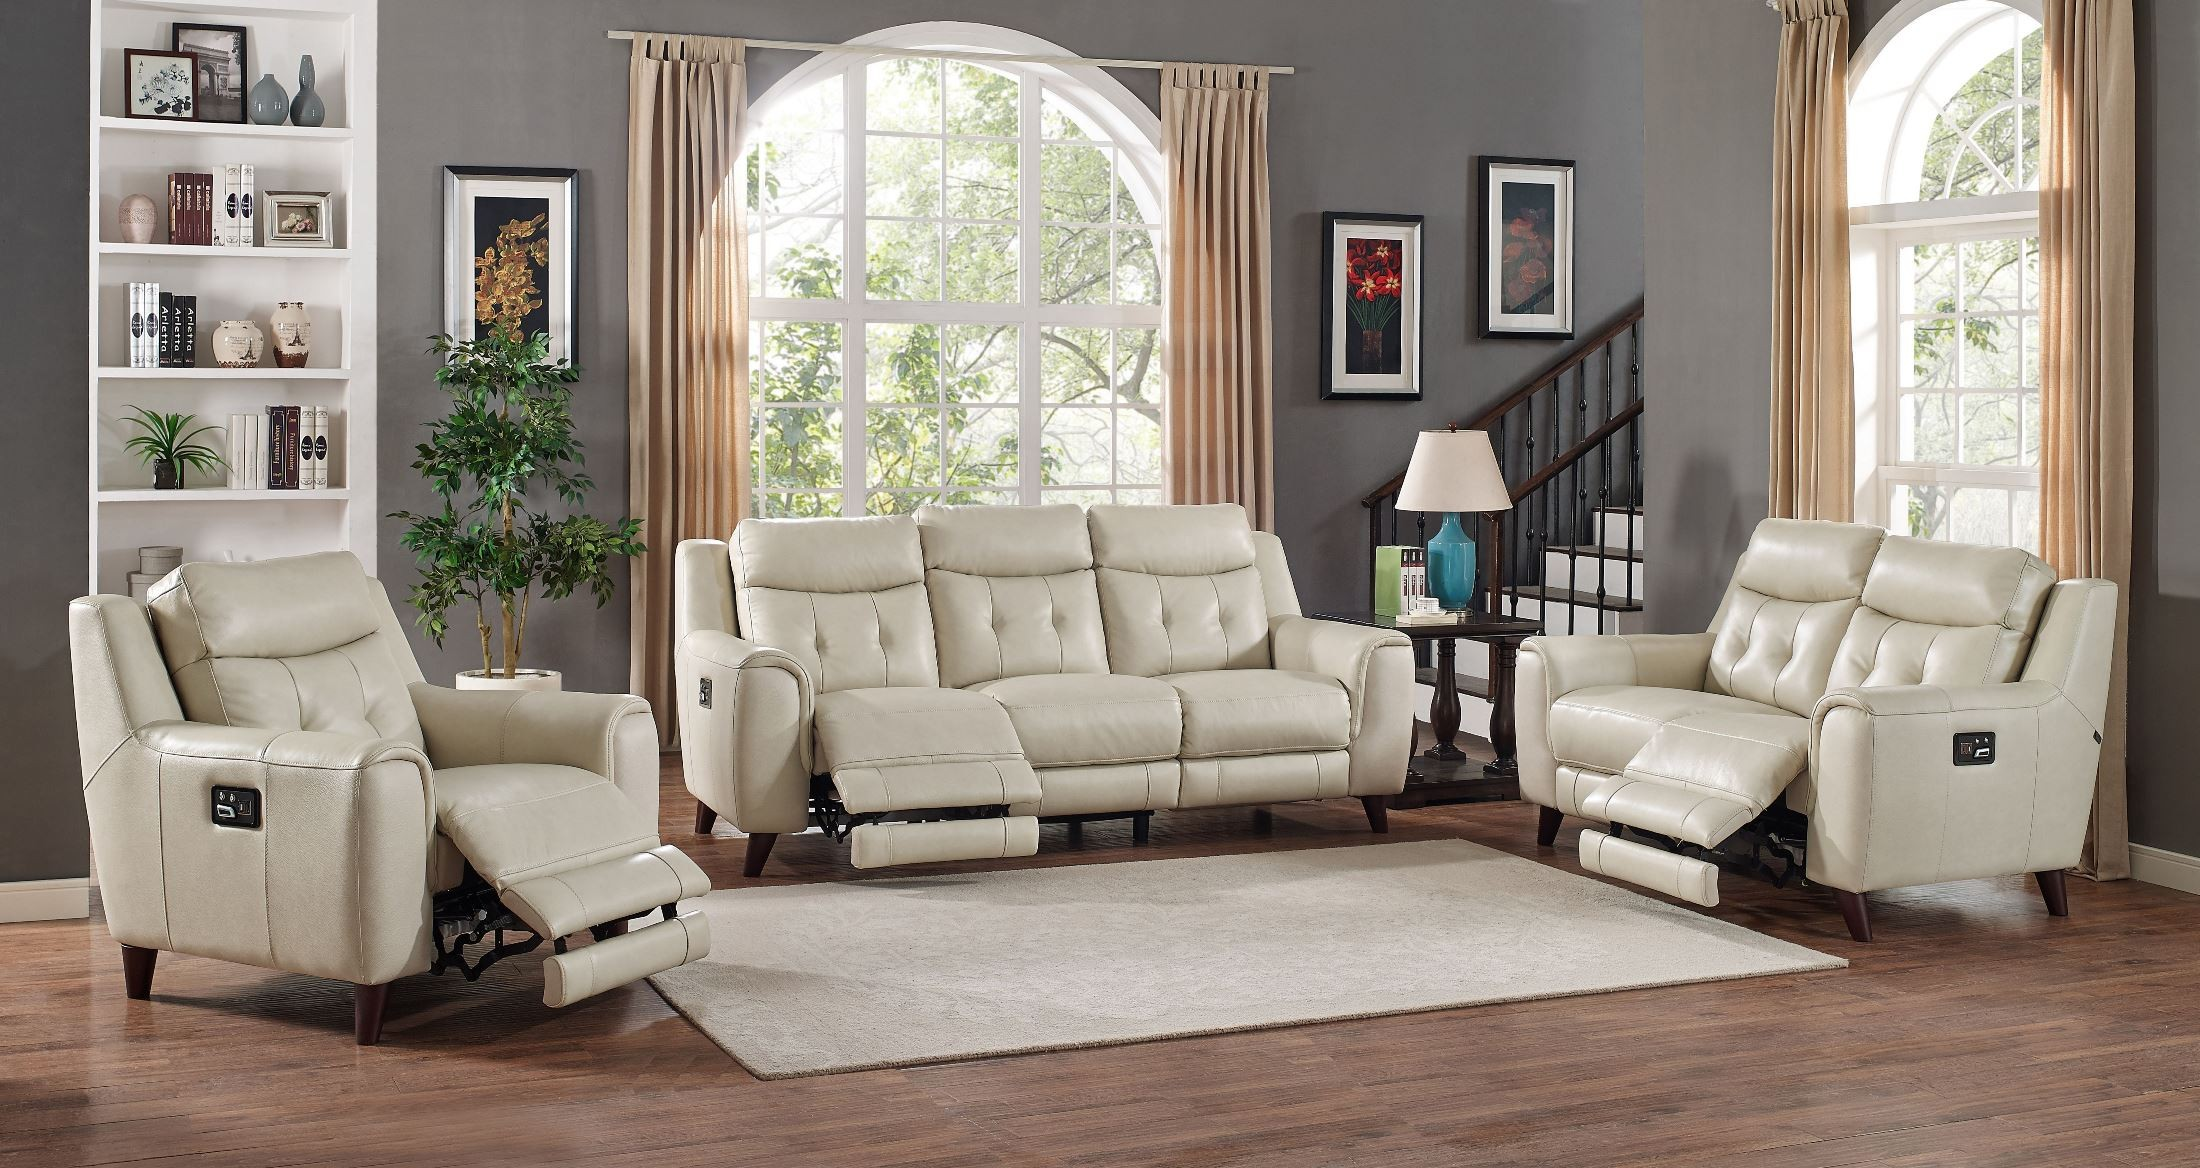 Paramount cream leather power reclining living room set - Living room with cream leather sofa ...